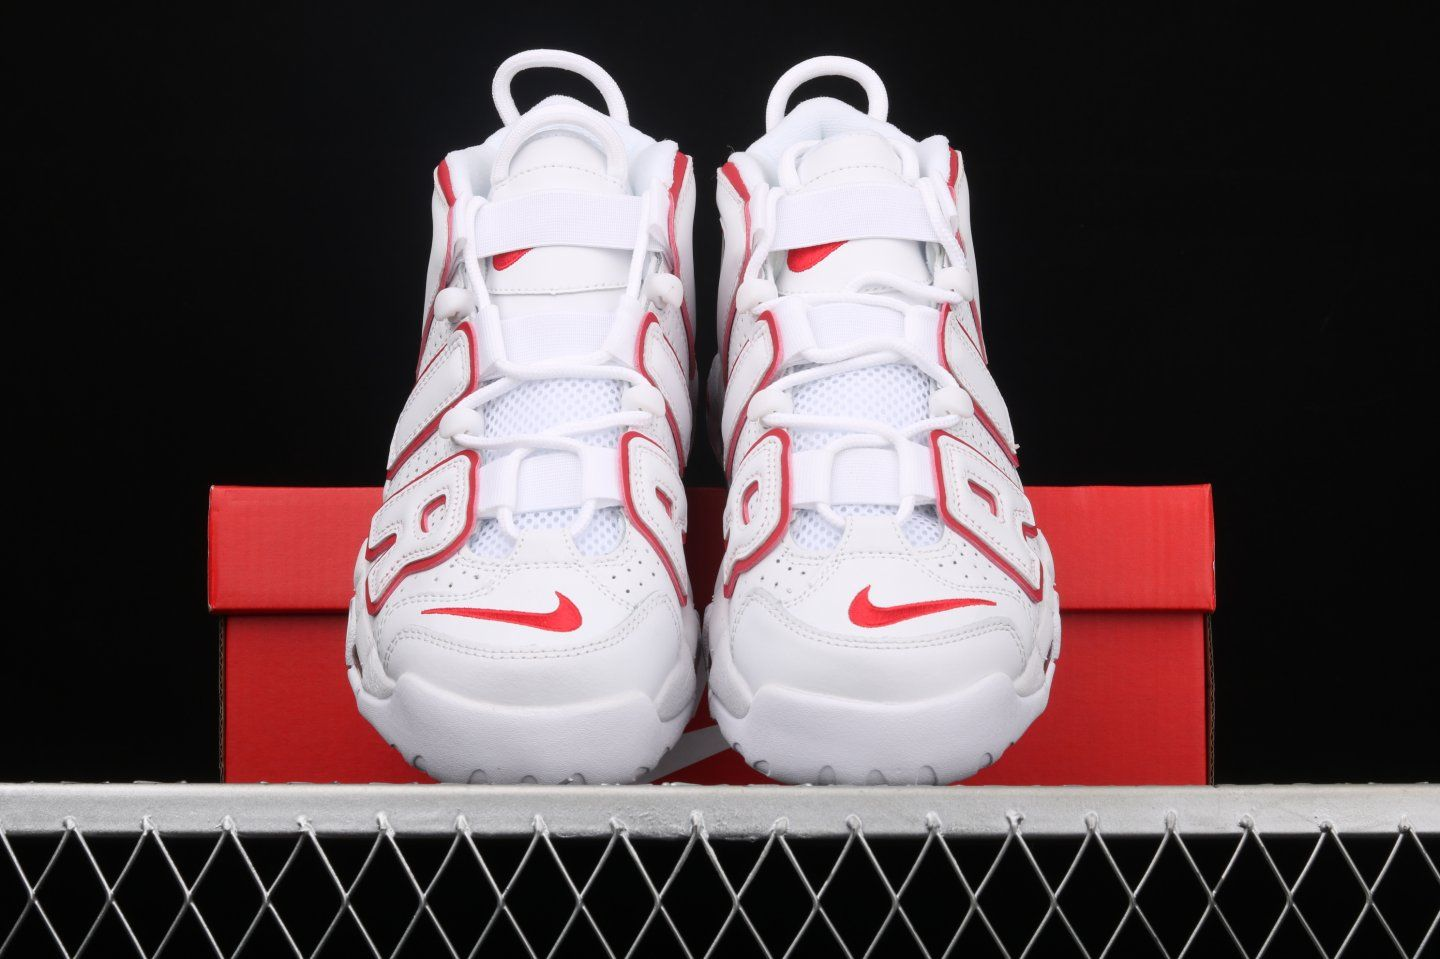 "Harga Sepatu Nike Air More Uptempo Nike Air More Uptempo ""White Varsity Red Outline"" 2 nike_air_more_uptempo_white_varsity_red_outline_2"